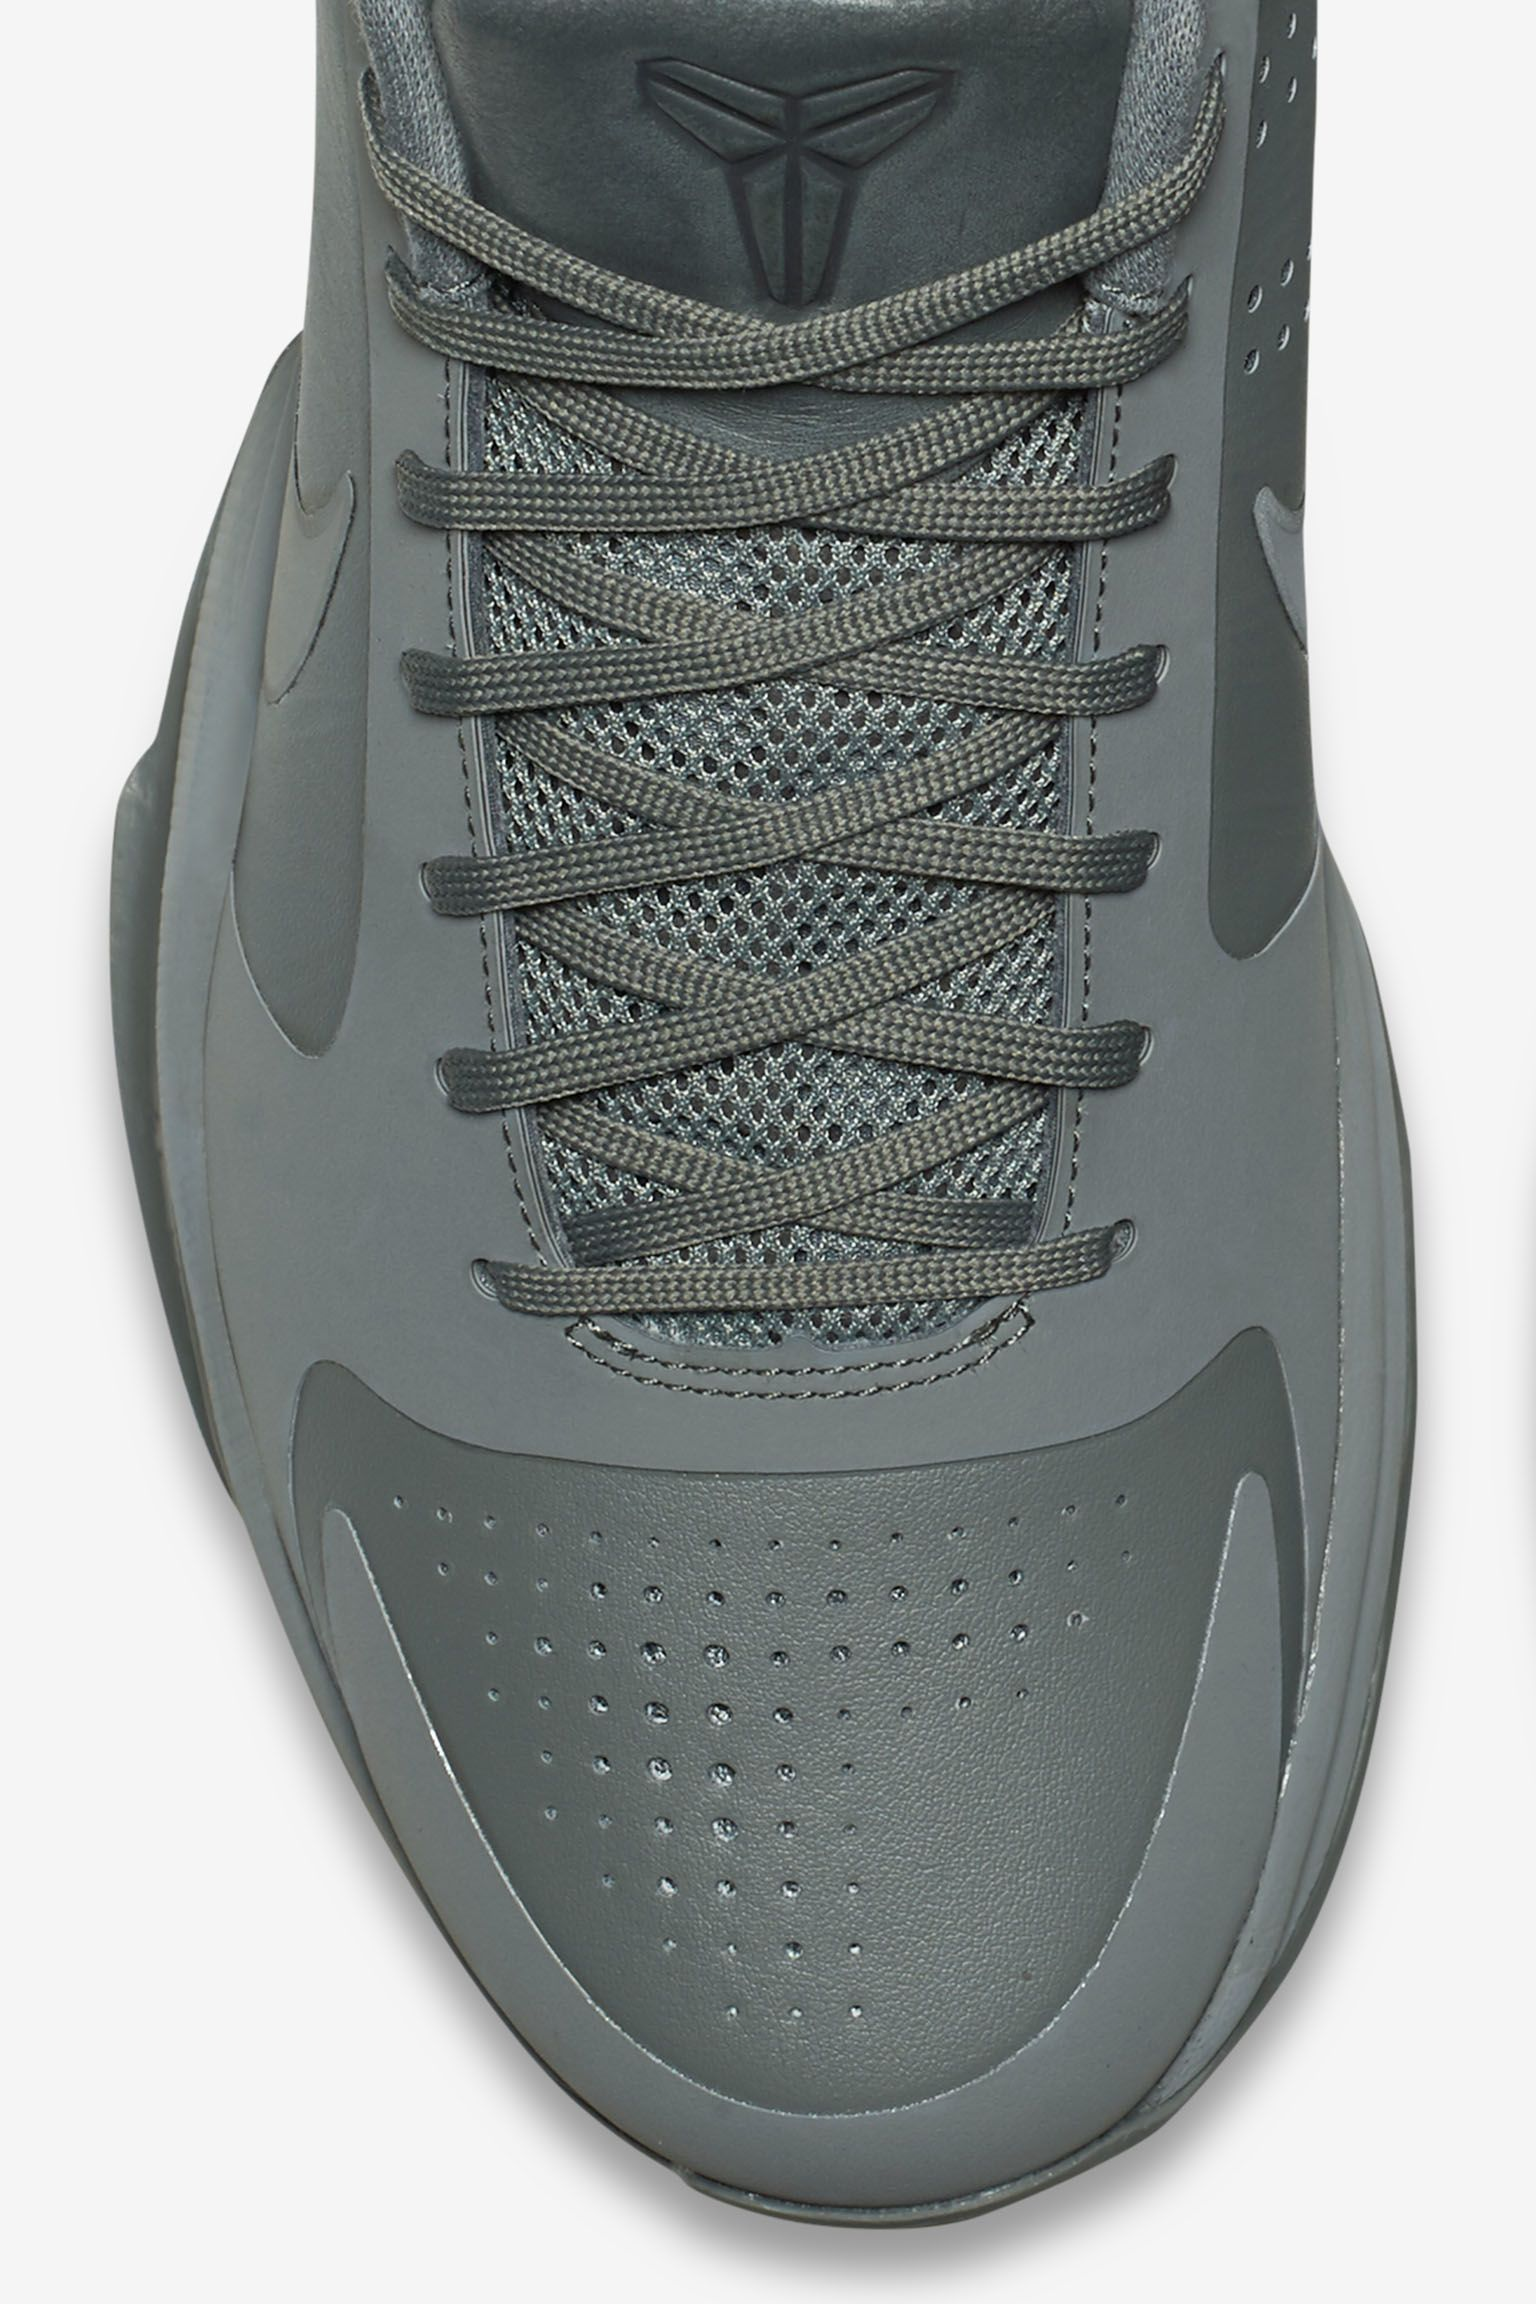 official photos 1d411 9b0ea ... sweden nike kobe 5 black mamba release date 8a3b9 11645